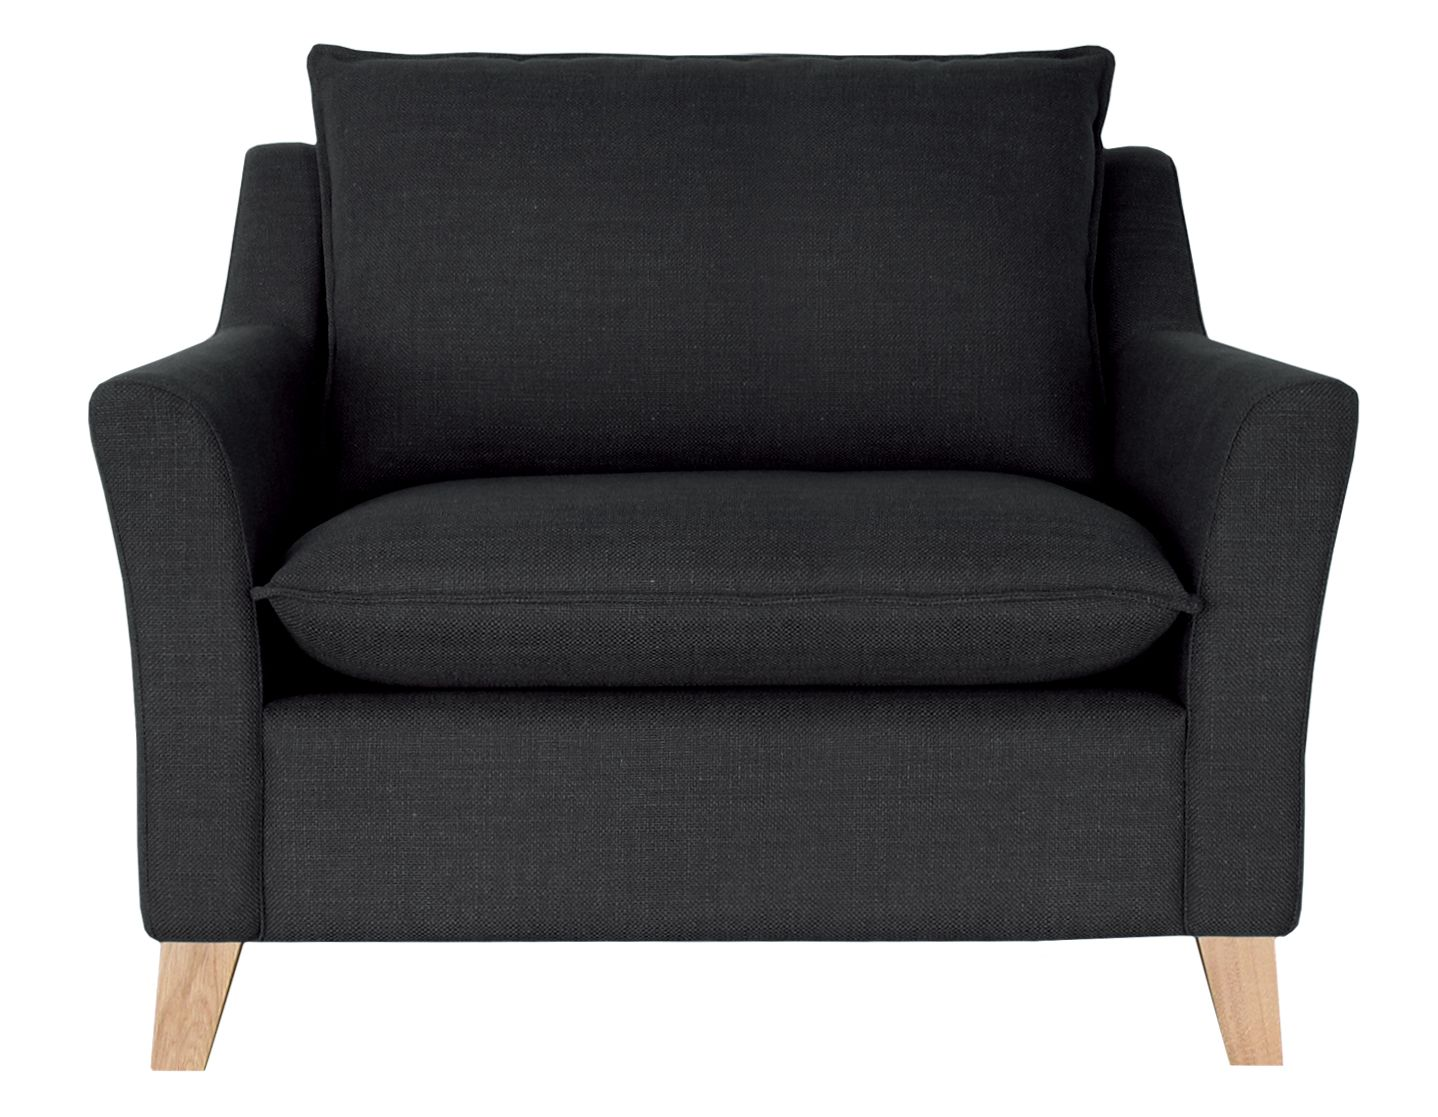 Capri snuggler chair charcoal